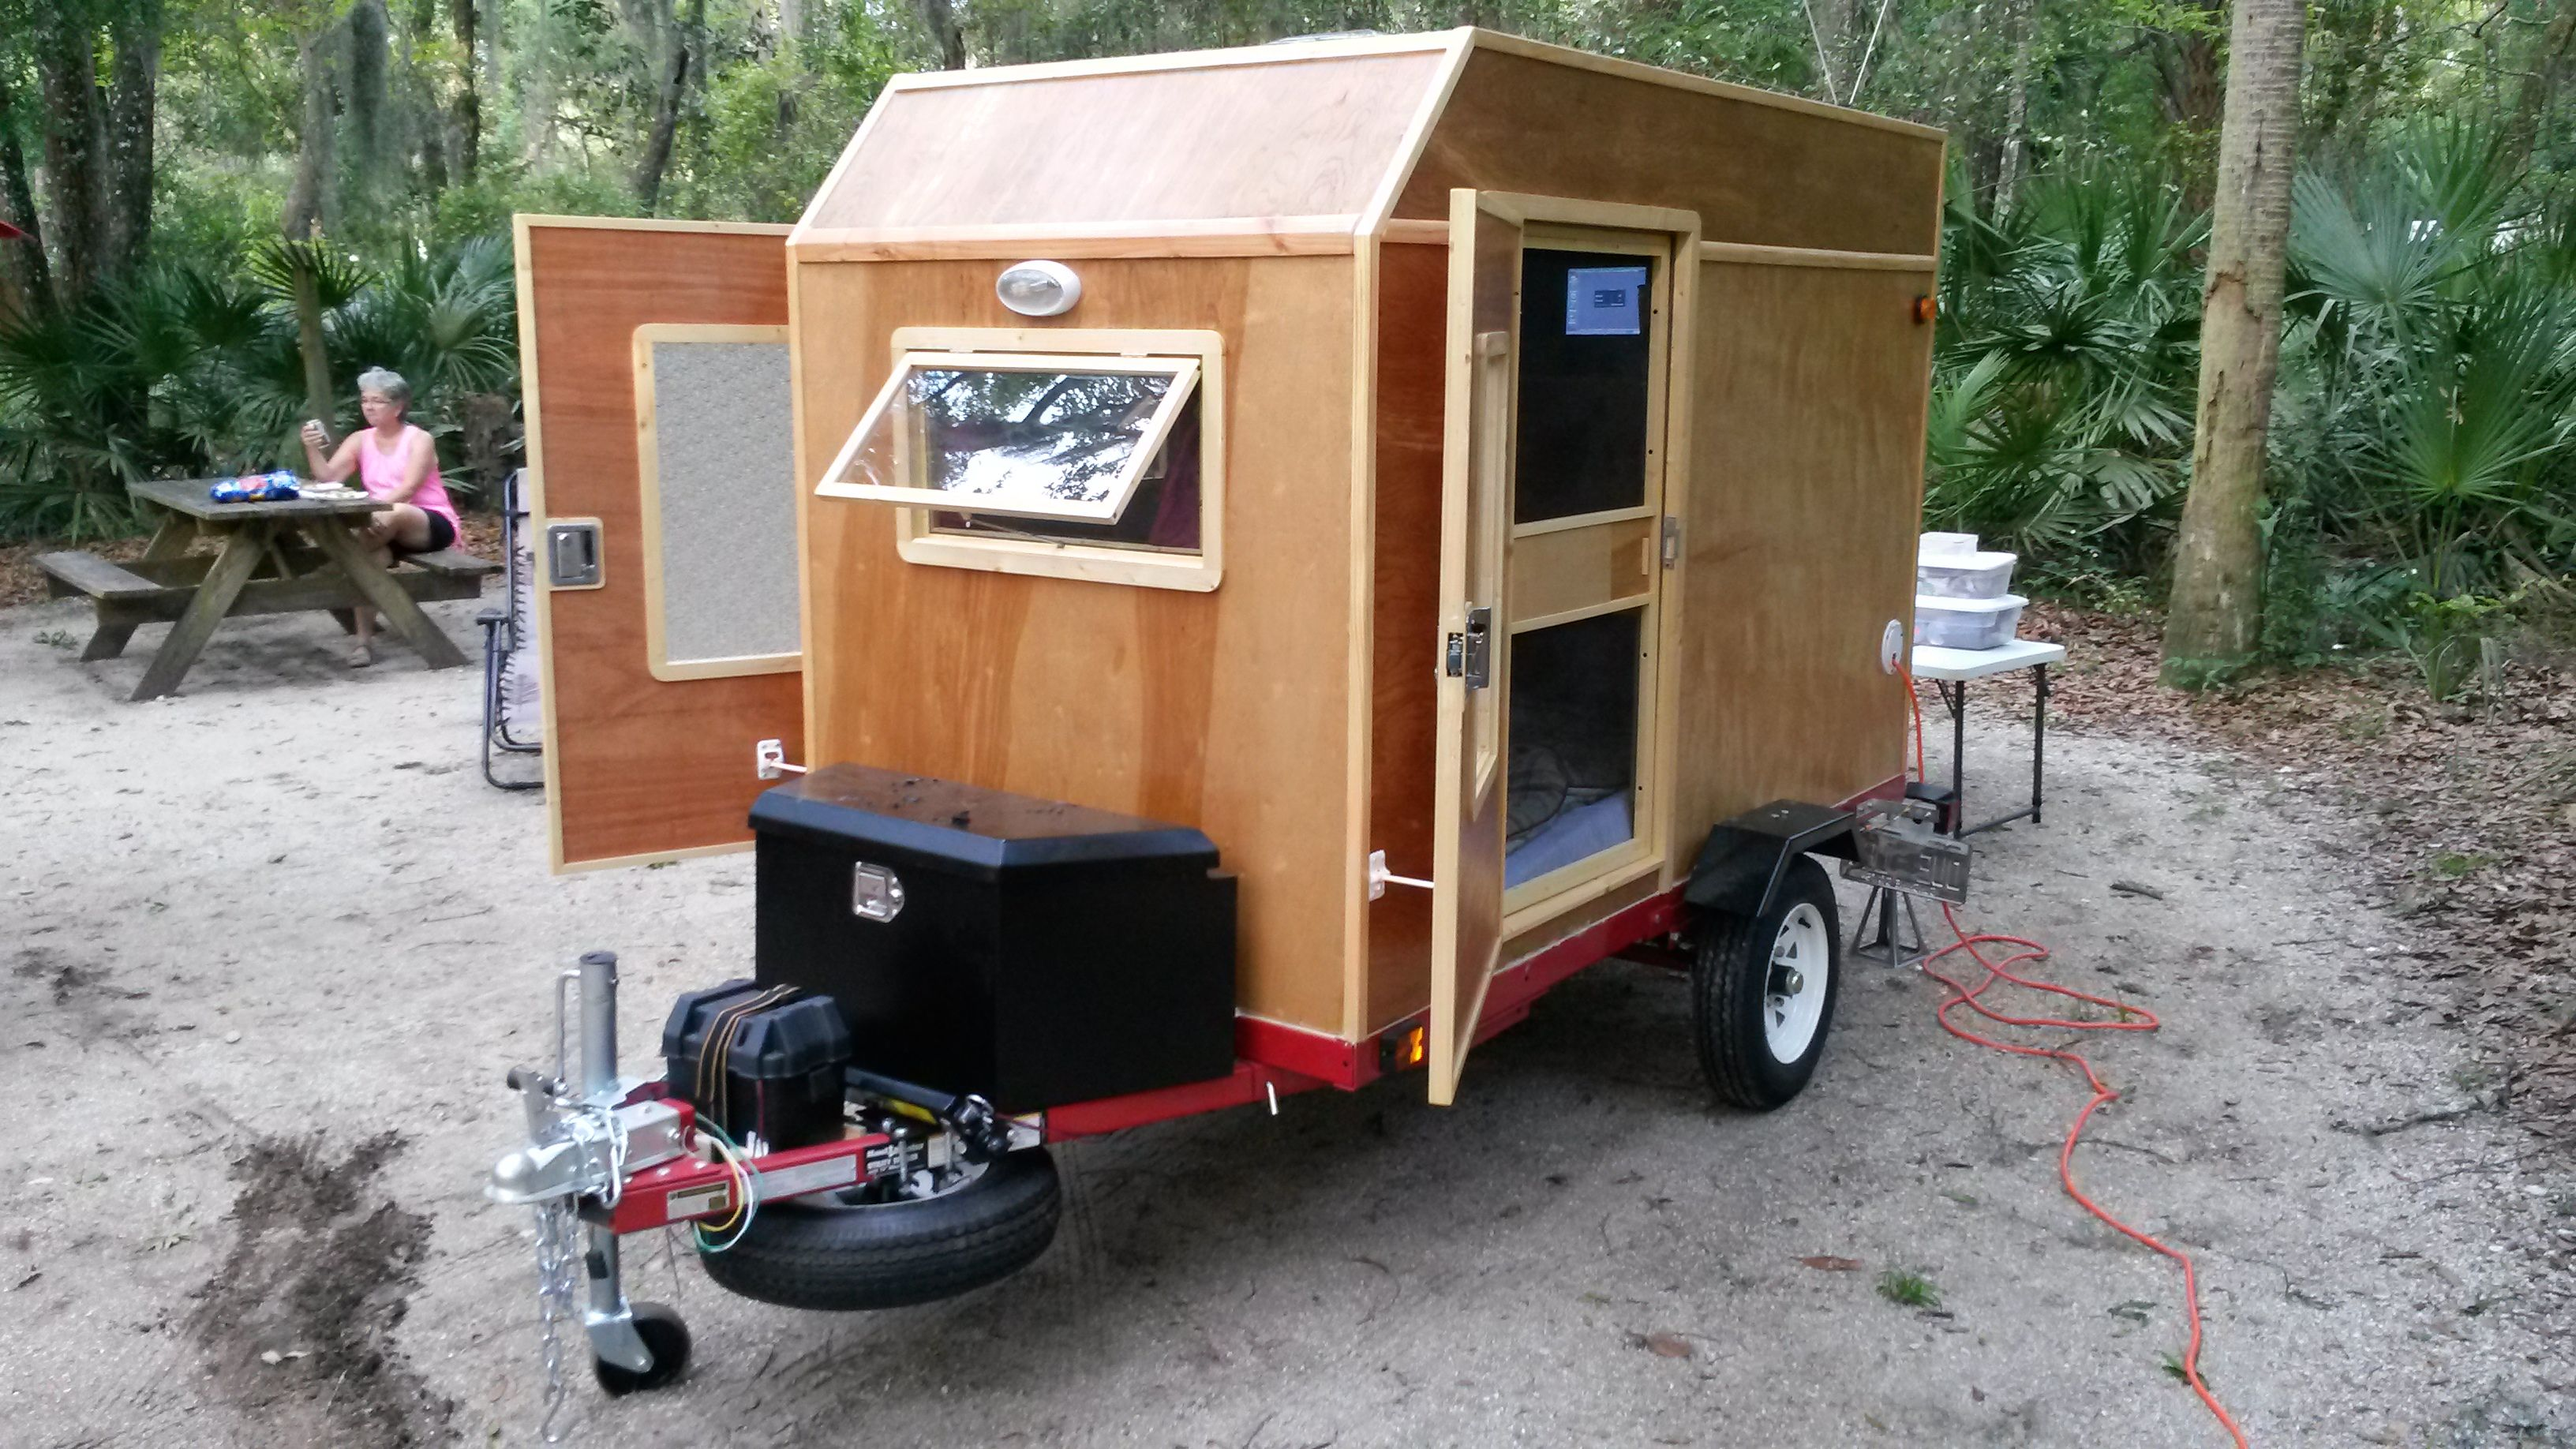 Mini Camper 1 Info Camping Trailer Diy Camper Trailer Mini Camper